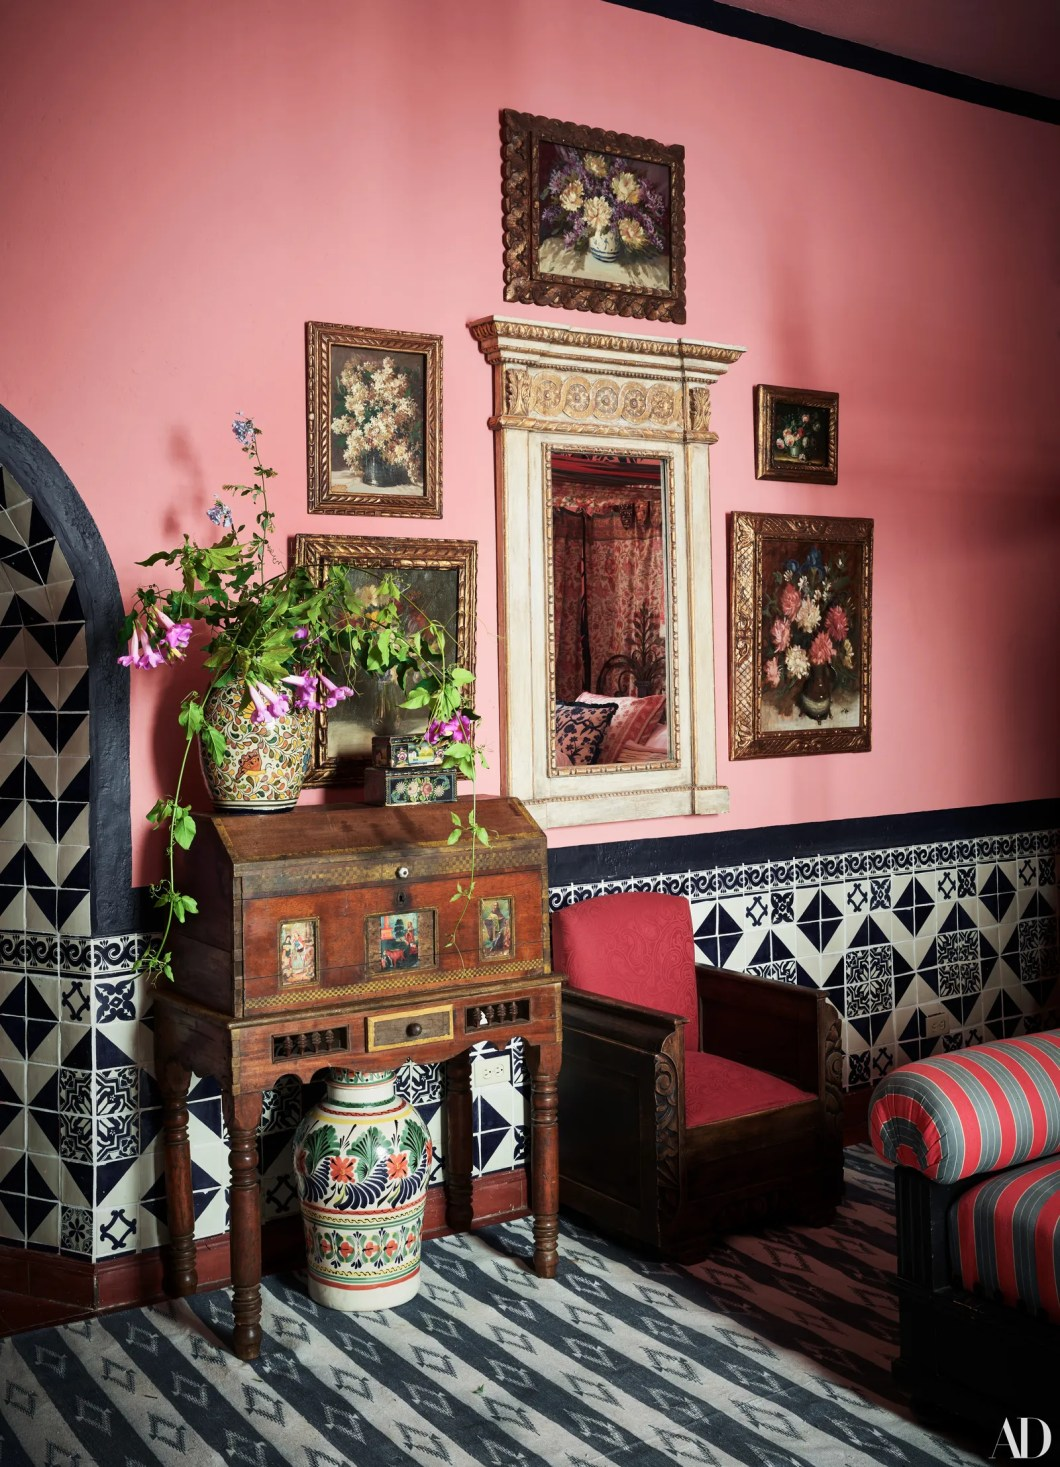 In Nile's bedroom still lifes by Nussbaumer's mother Barbara StephensDunlap surround a mirror from Ceylon et Cie....